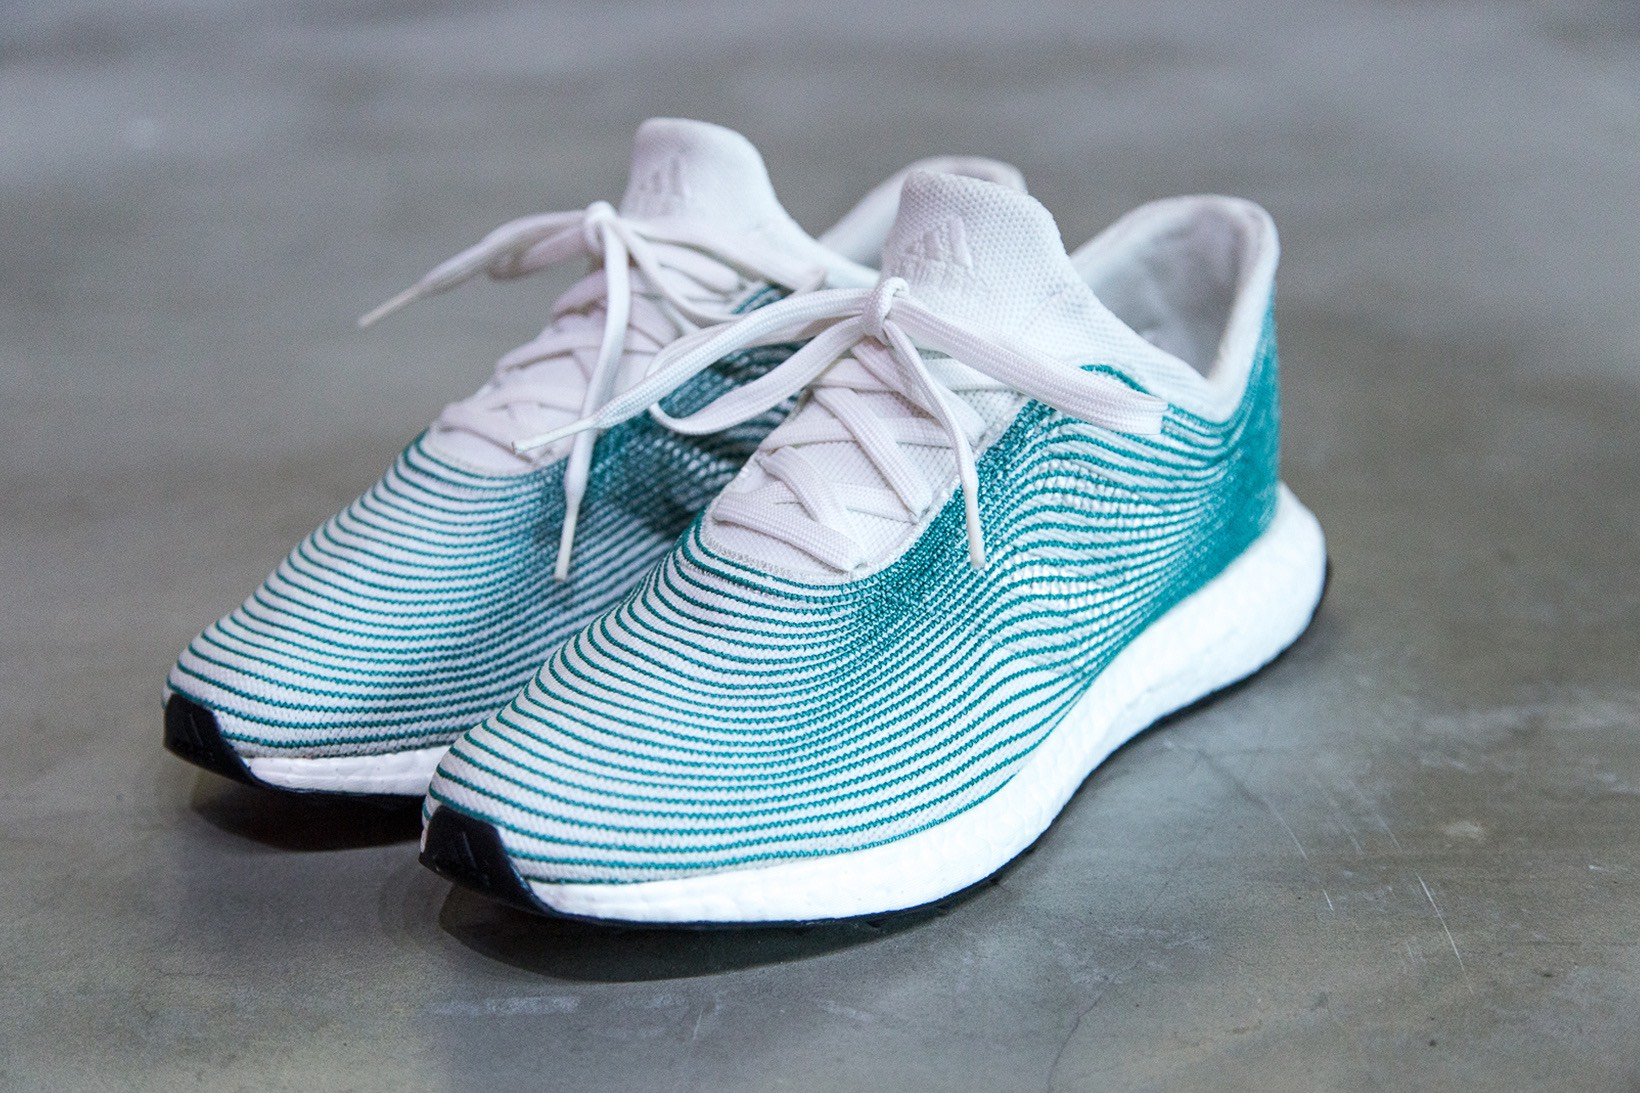 2885e3e031ac5 closer-look-at-adidas-x-parley-collaboration-world-oceans-day-3 ...